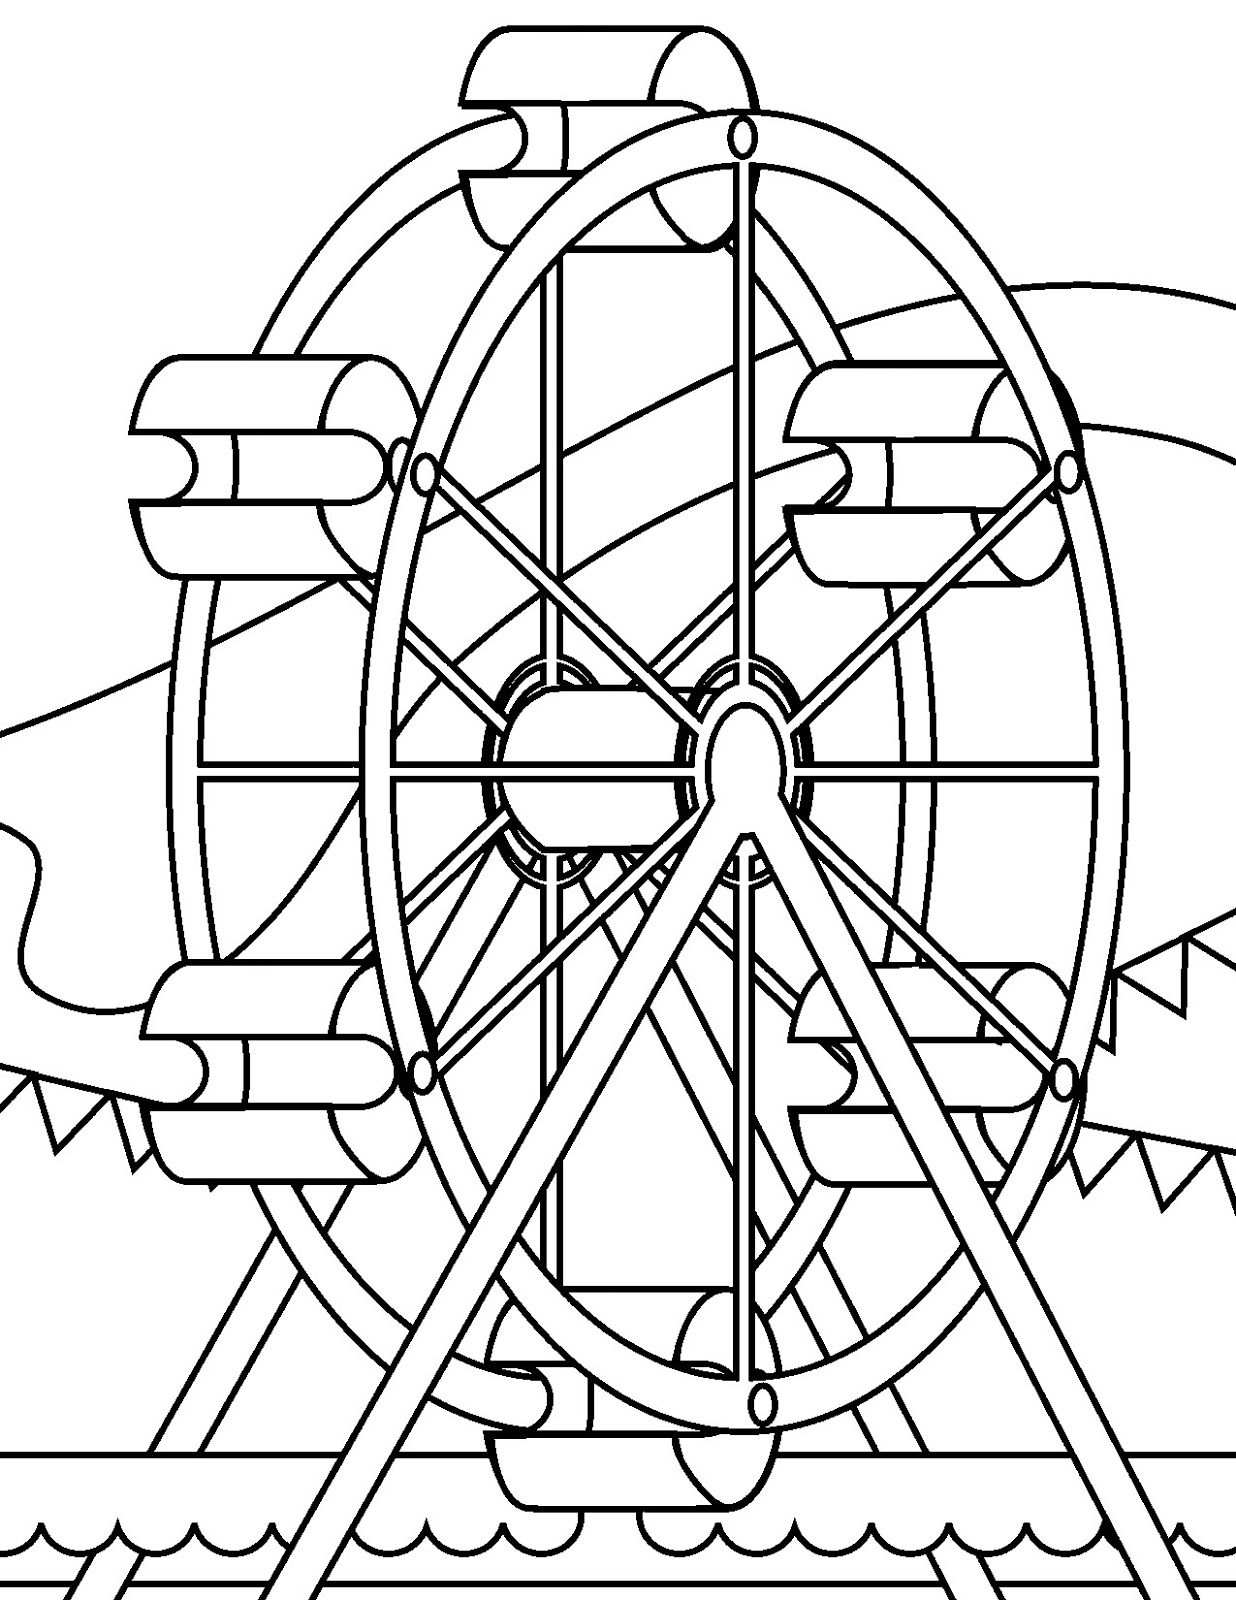 Ferris wheel coloring pages ~ Miscellaneous Colouring Pages: Miscellaneous Amusement ...